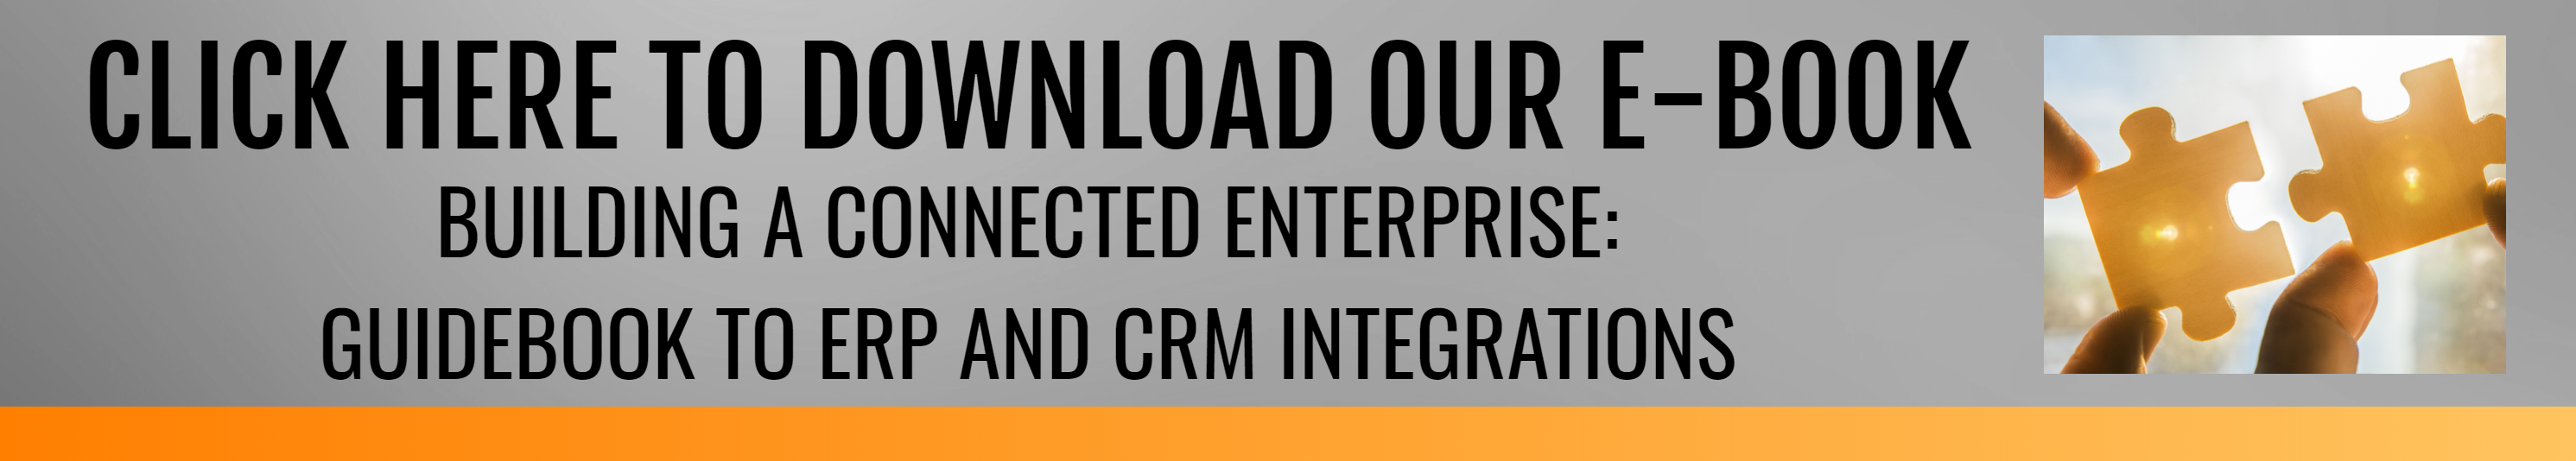 ERP CRM Integration E-Book Download